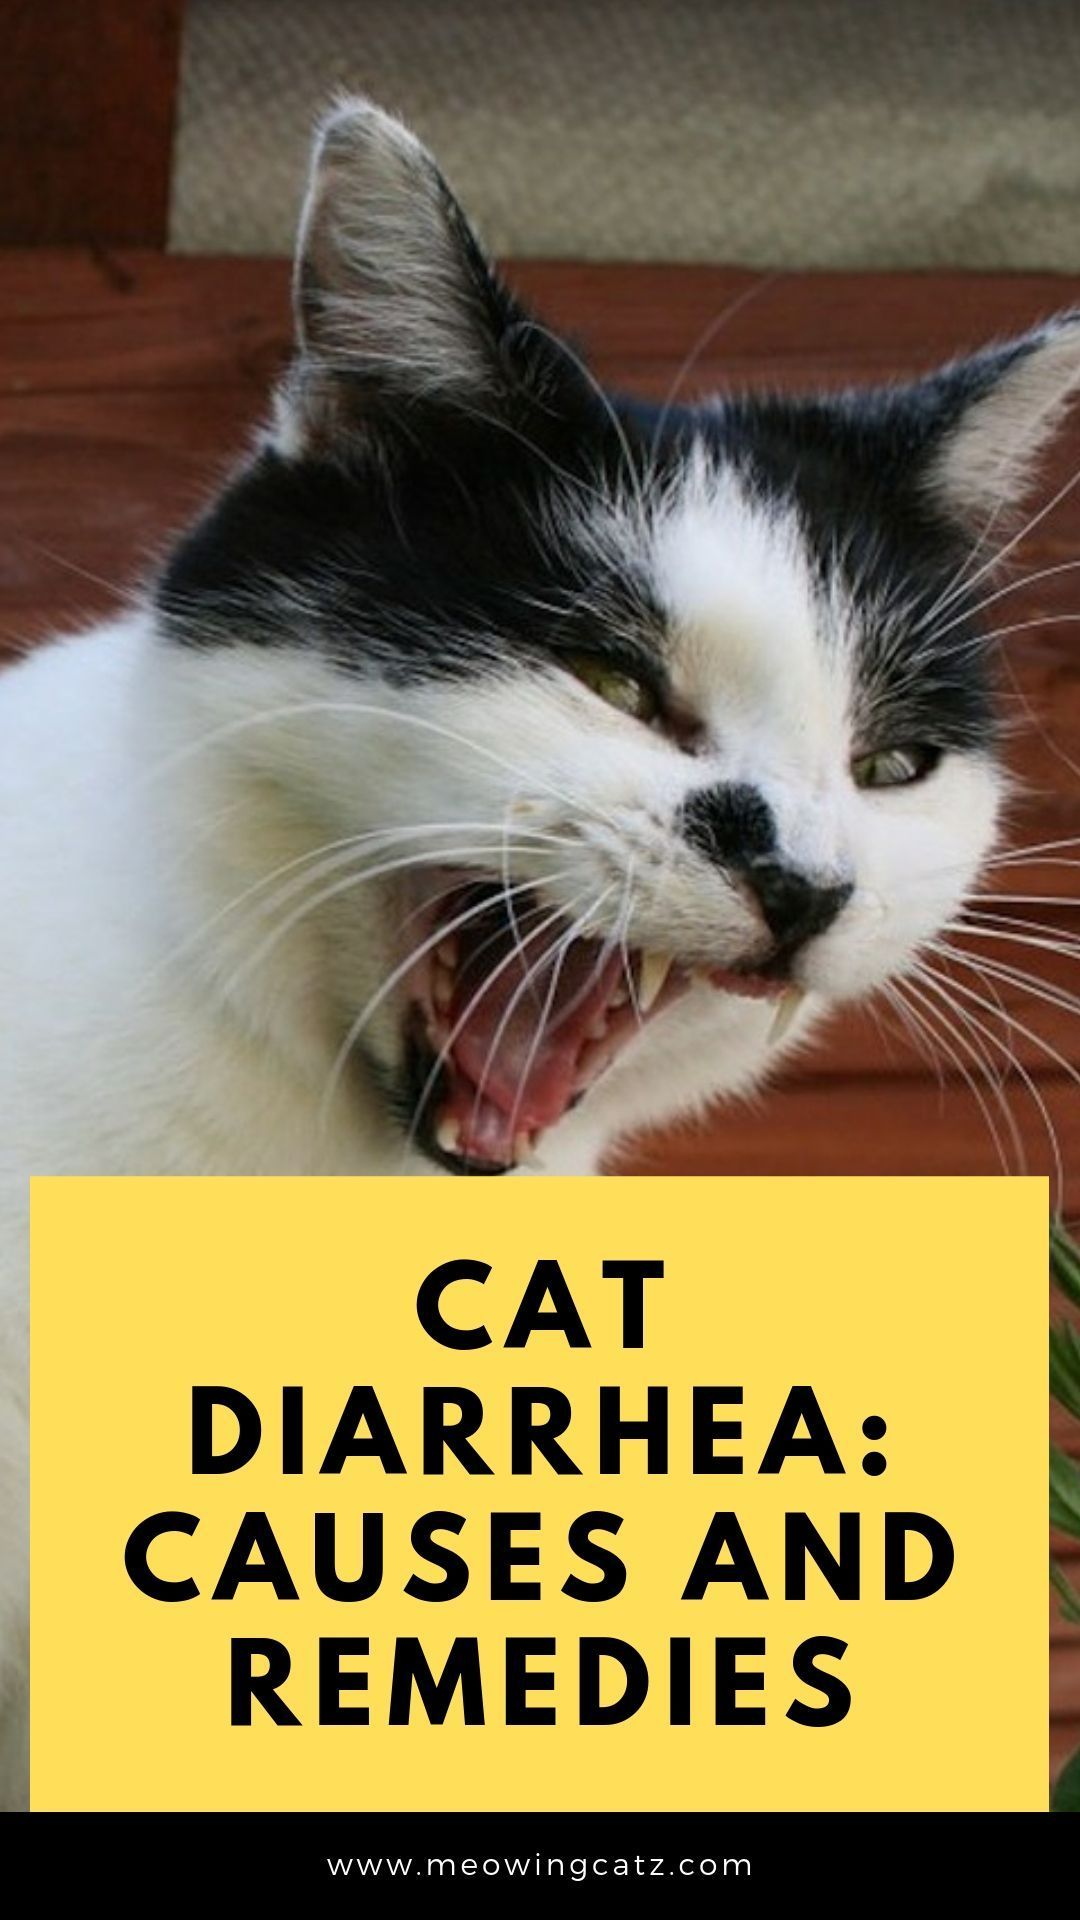 Cat Diarrhea Causes And Remedies Best Tips For Indoor Cat Diarrhea Diarrhea Remedies Diarrhea Causes